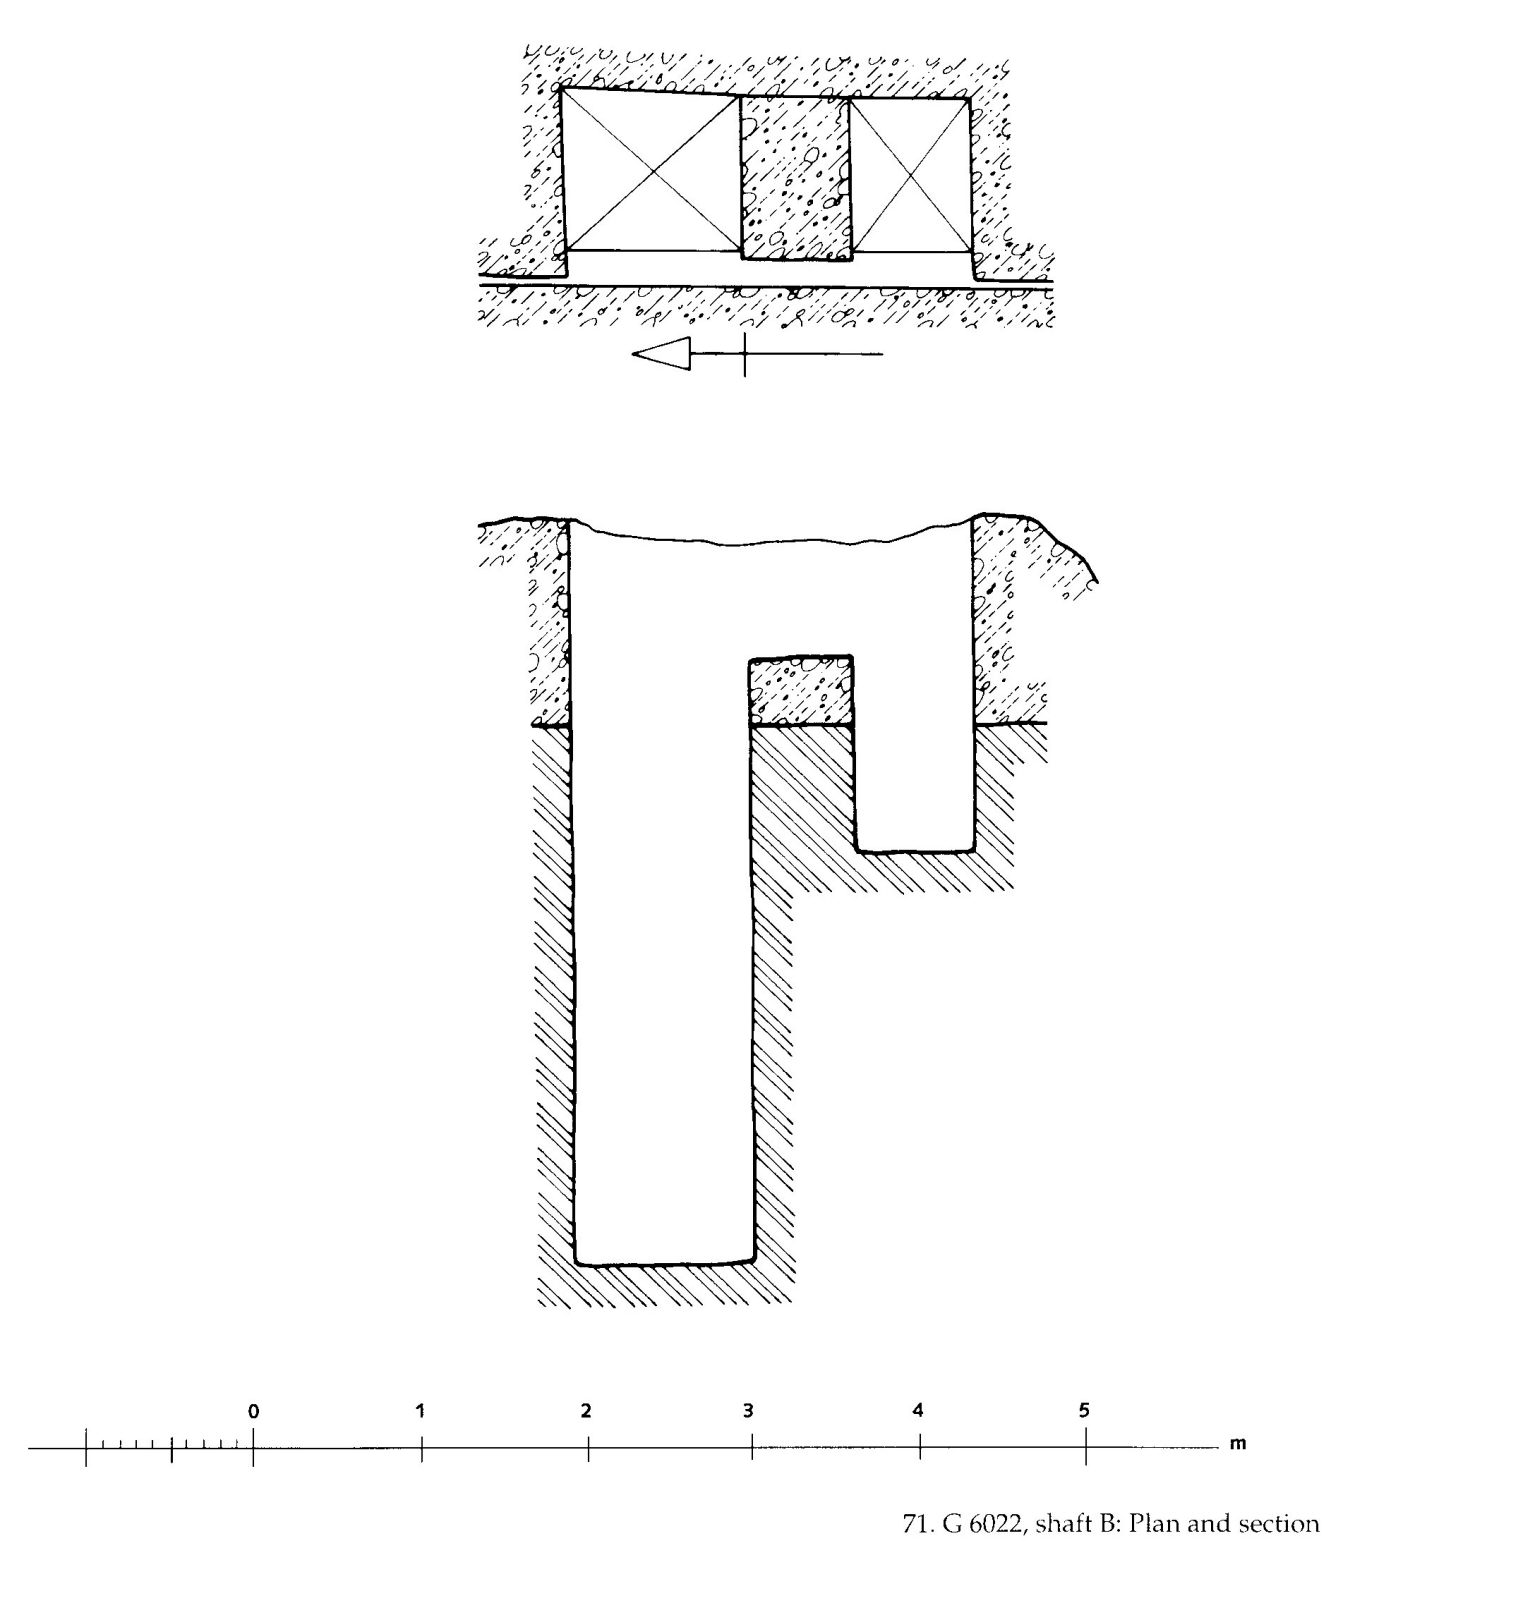 Maps and plans: G 6022, Shaft B